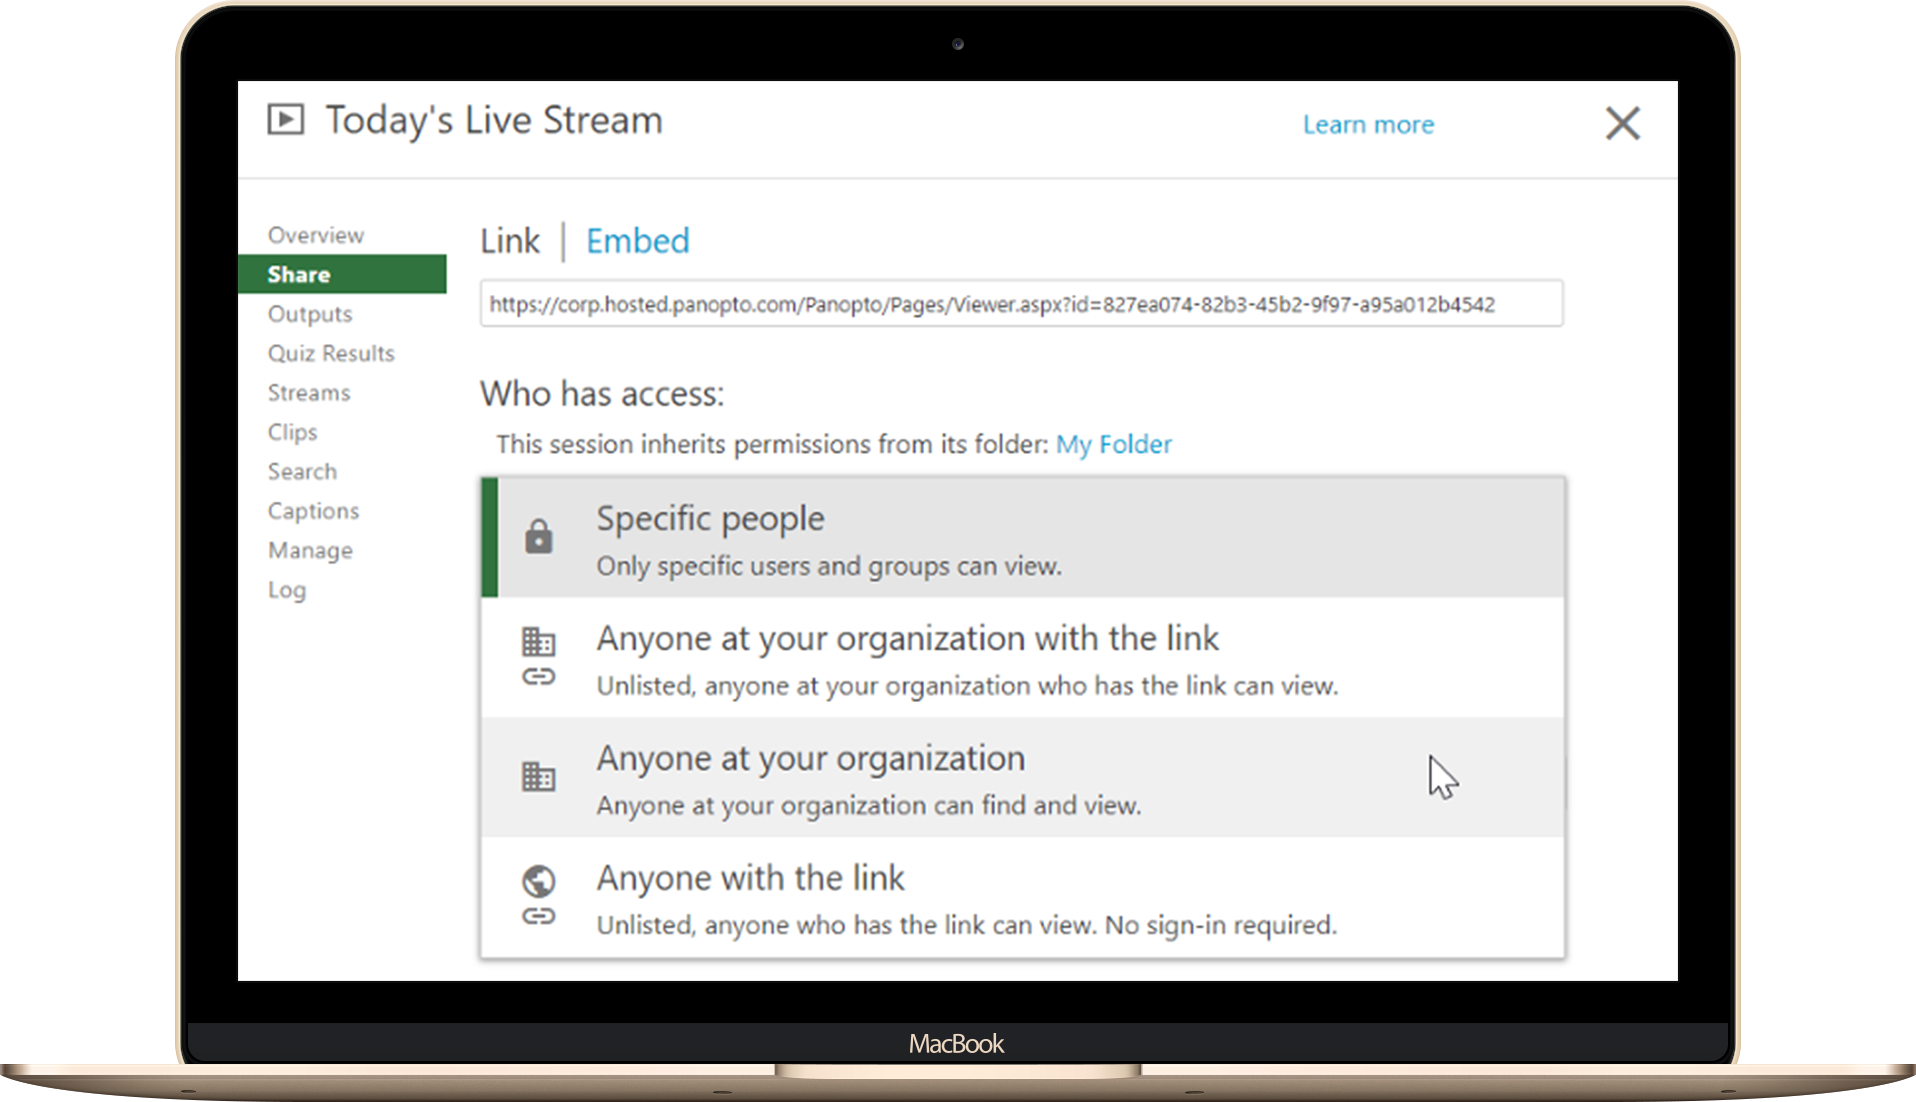 Live Streaming Options For Businesses: From Public to